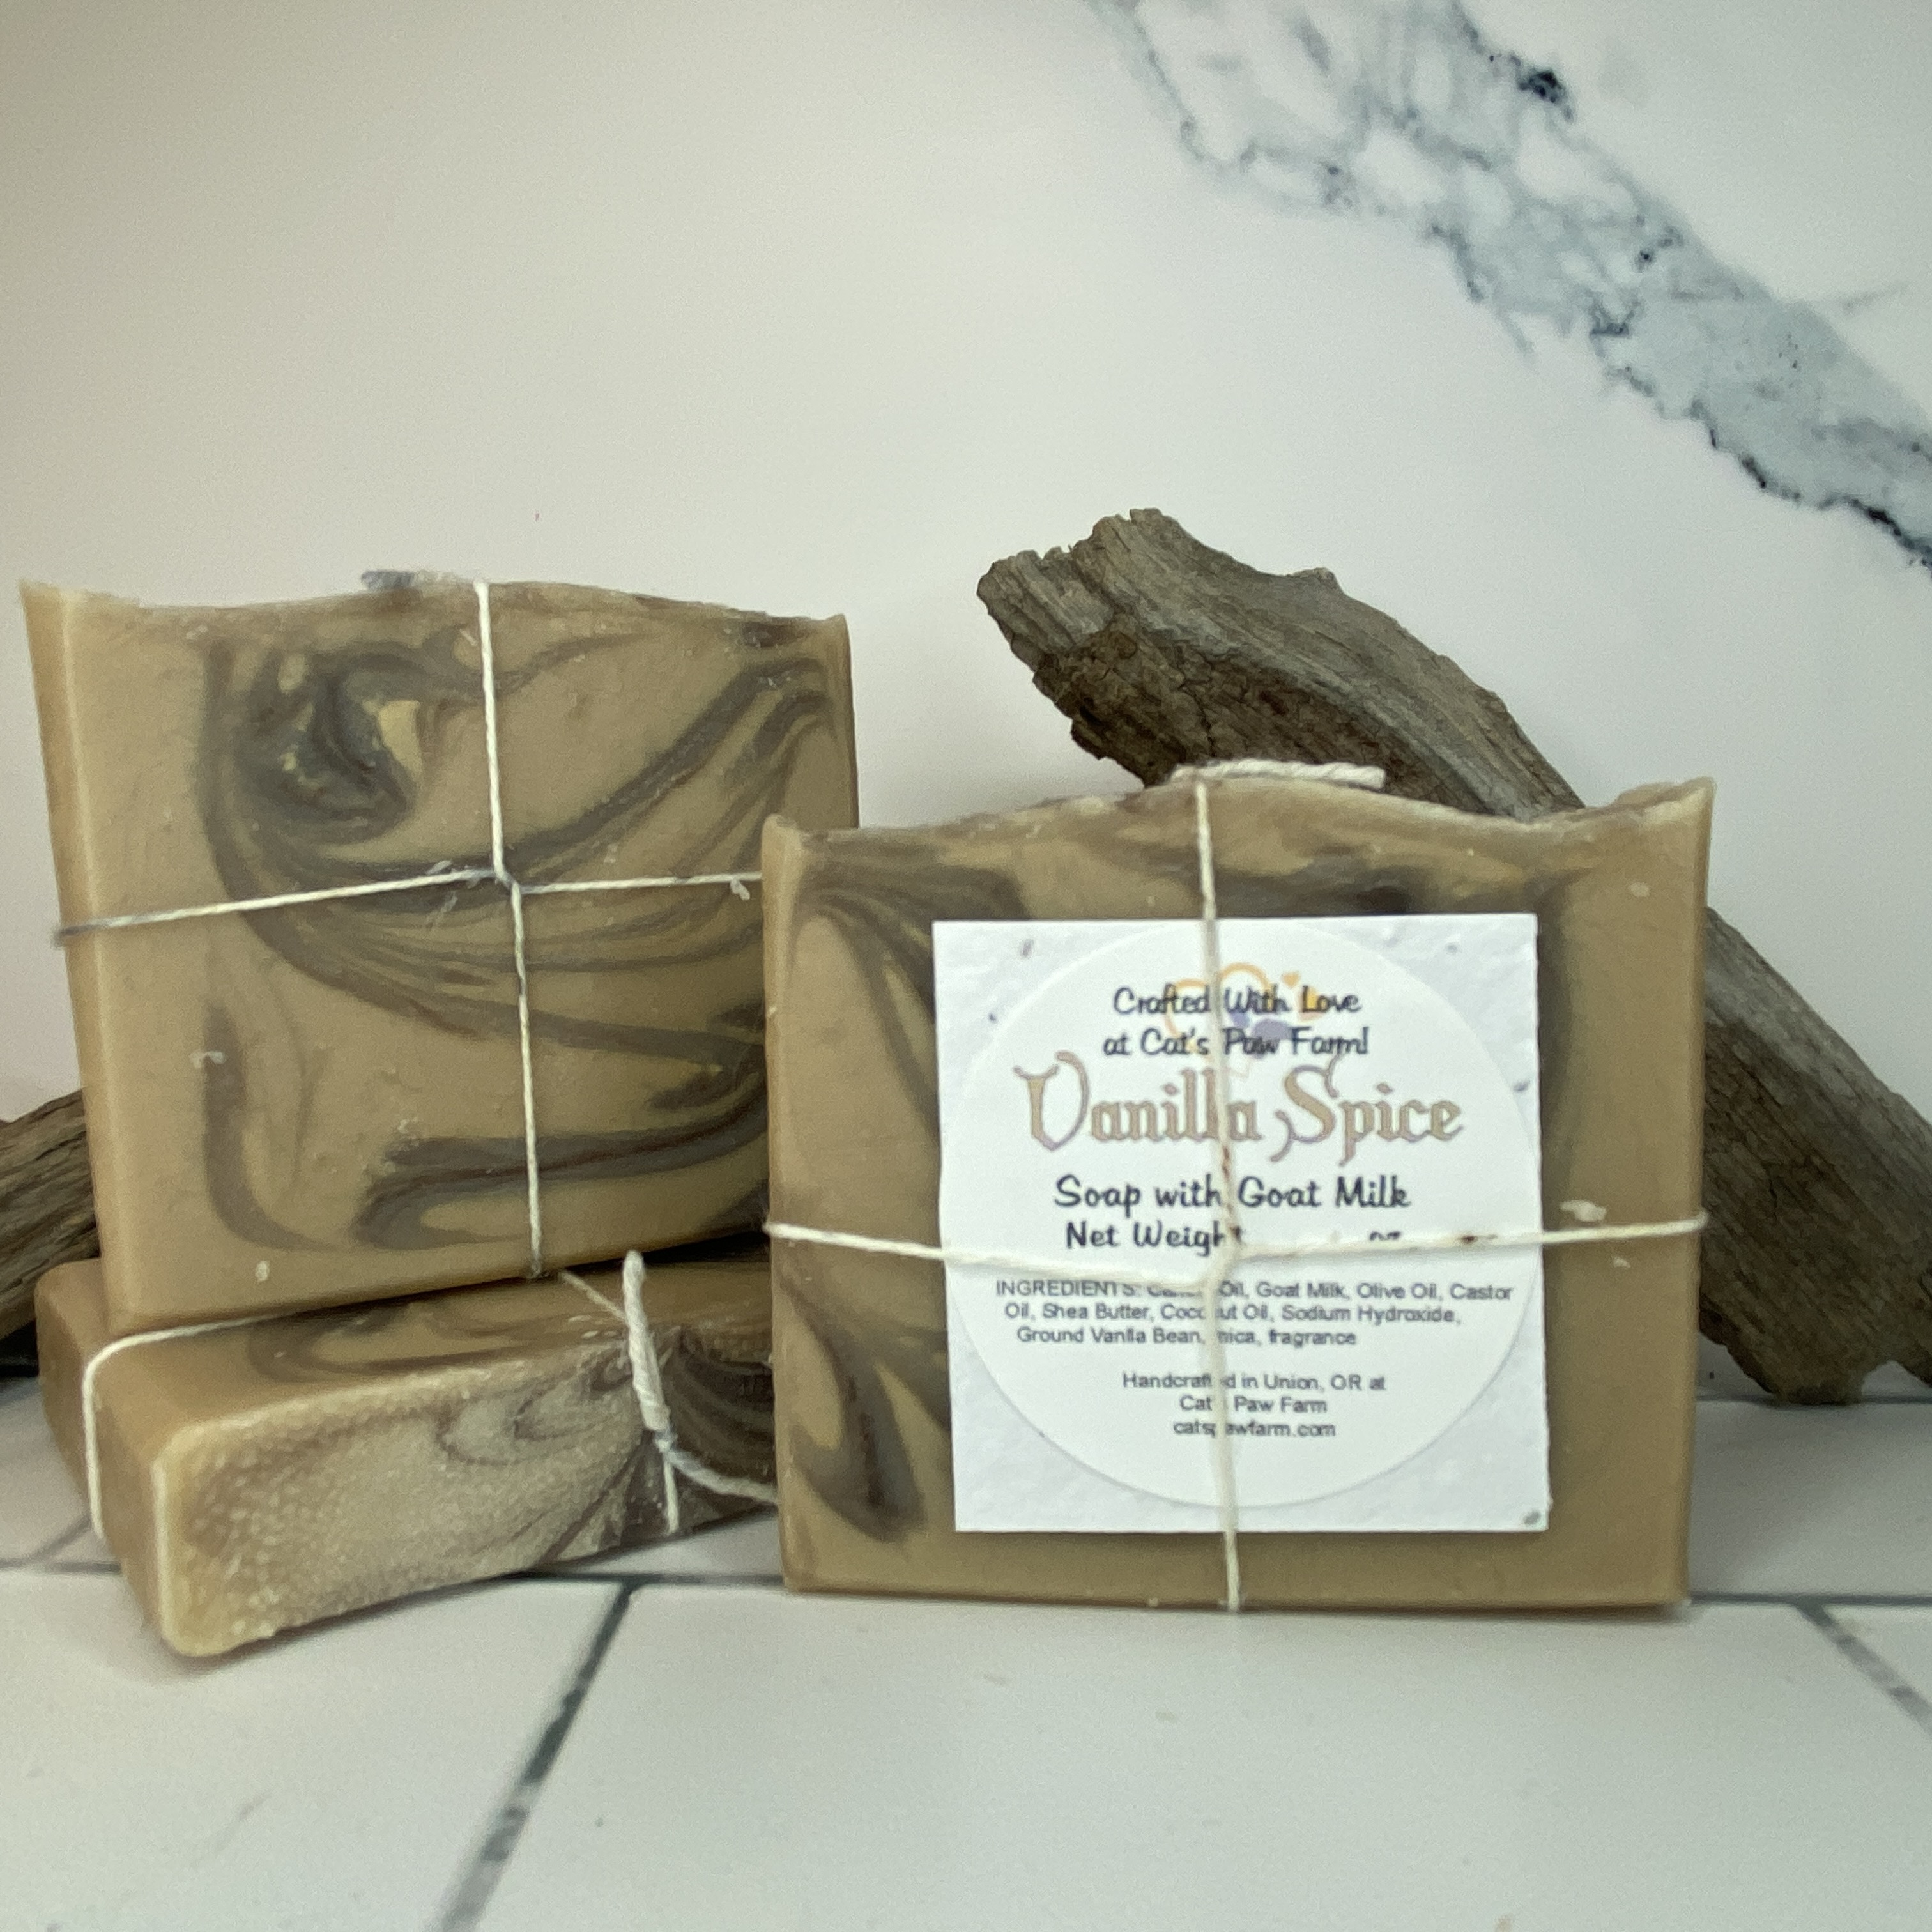 Vanilla Spice Scented Soap with Goat Milk